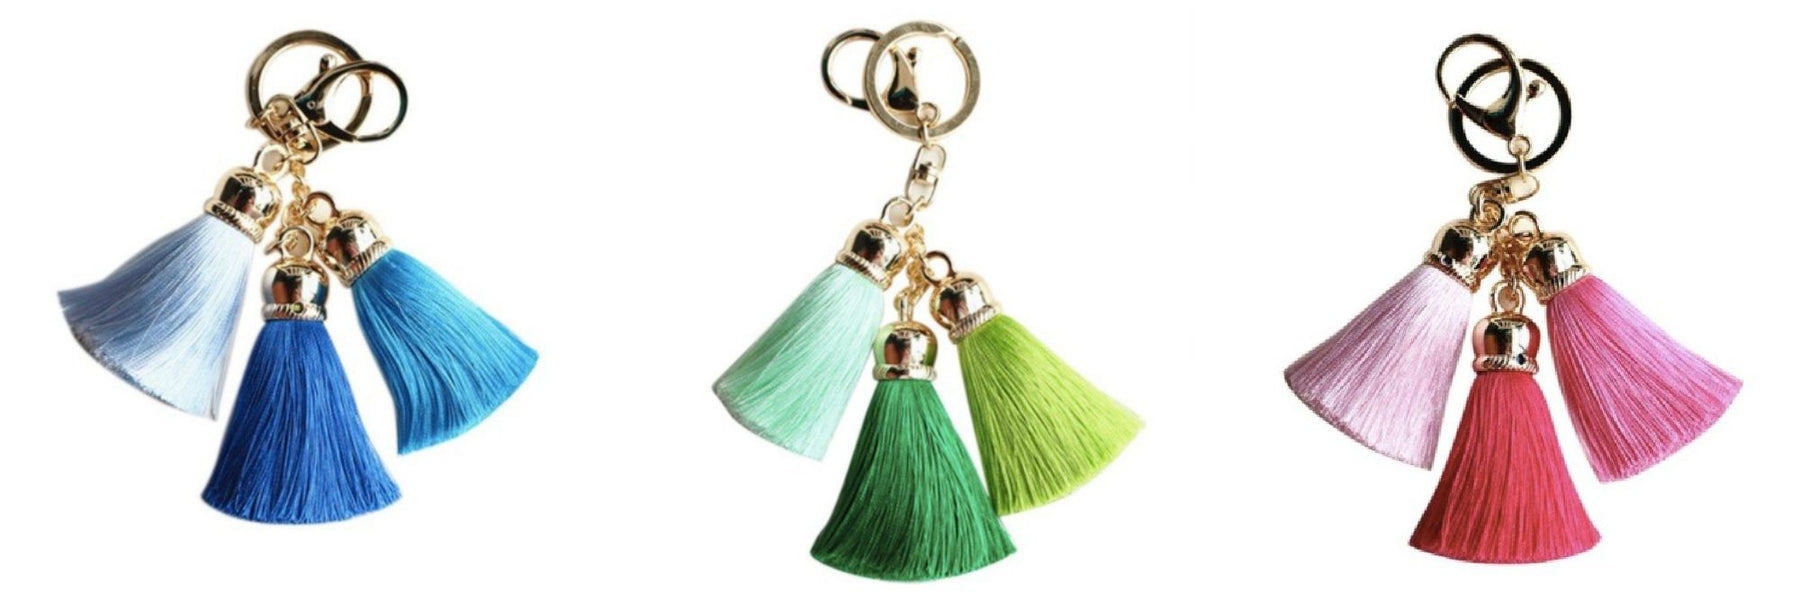 100% SILK TASSEL KEY CHAIN/BAG CHARM